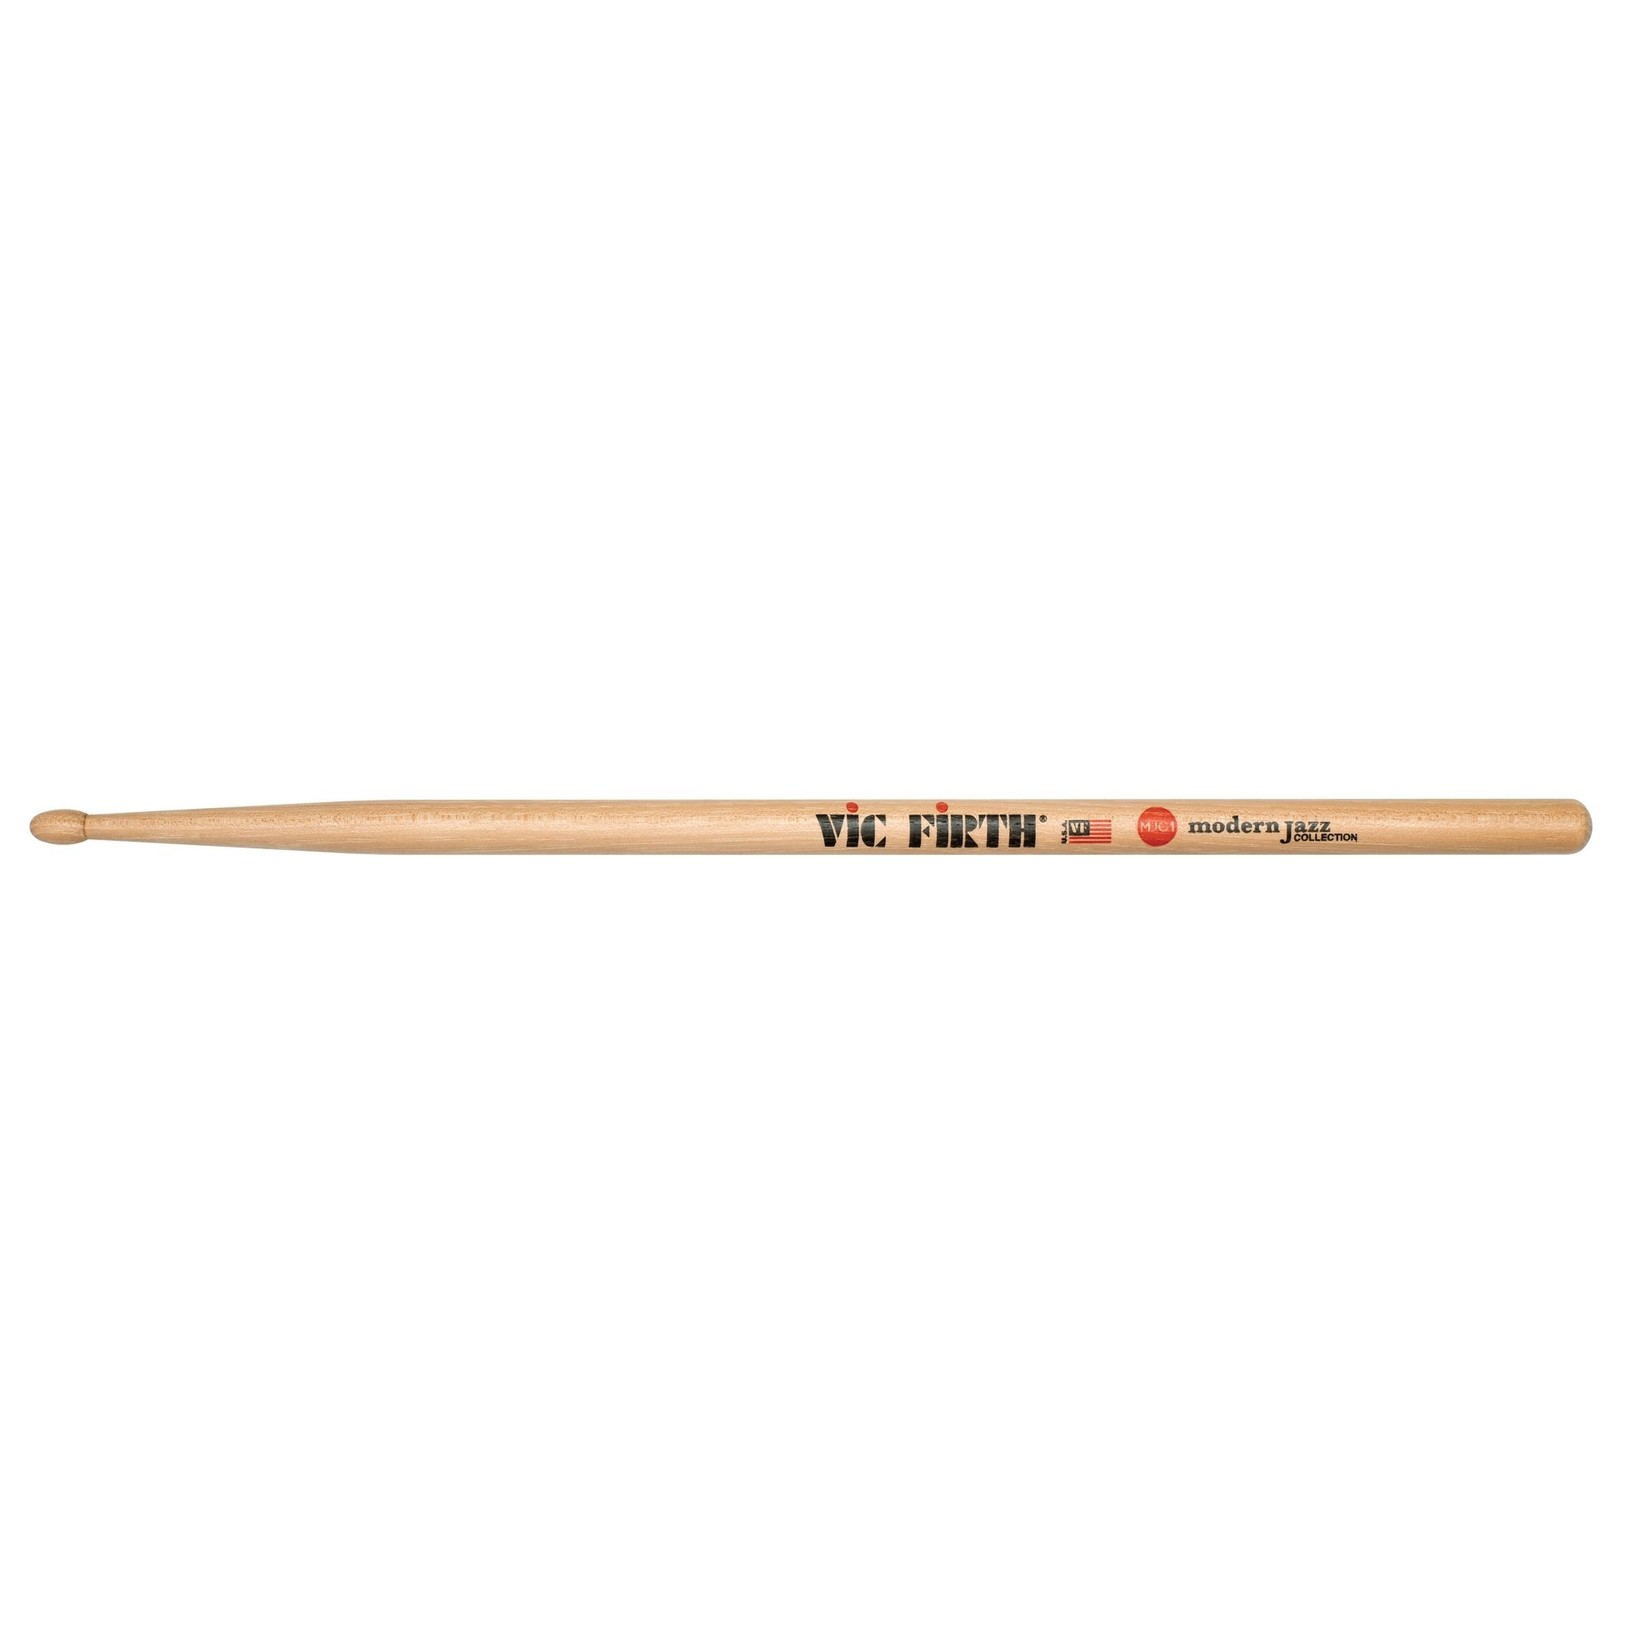 Vic Firth Vic Firth Modern Jazz Collection - 1